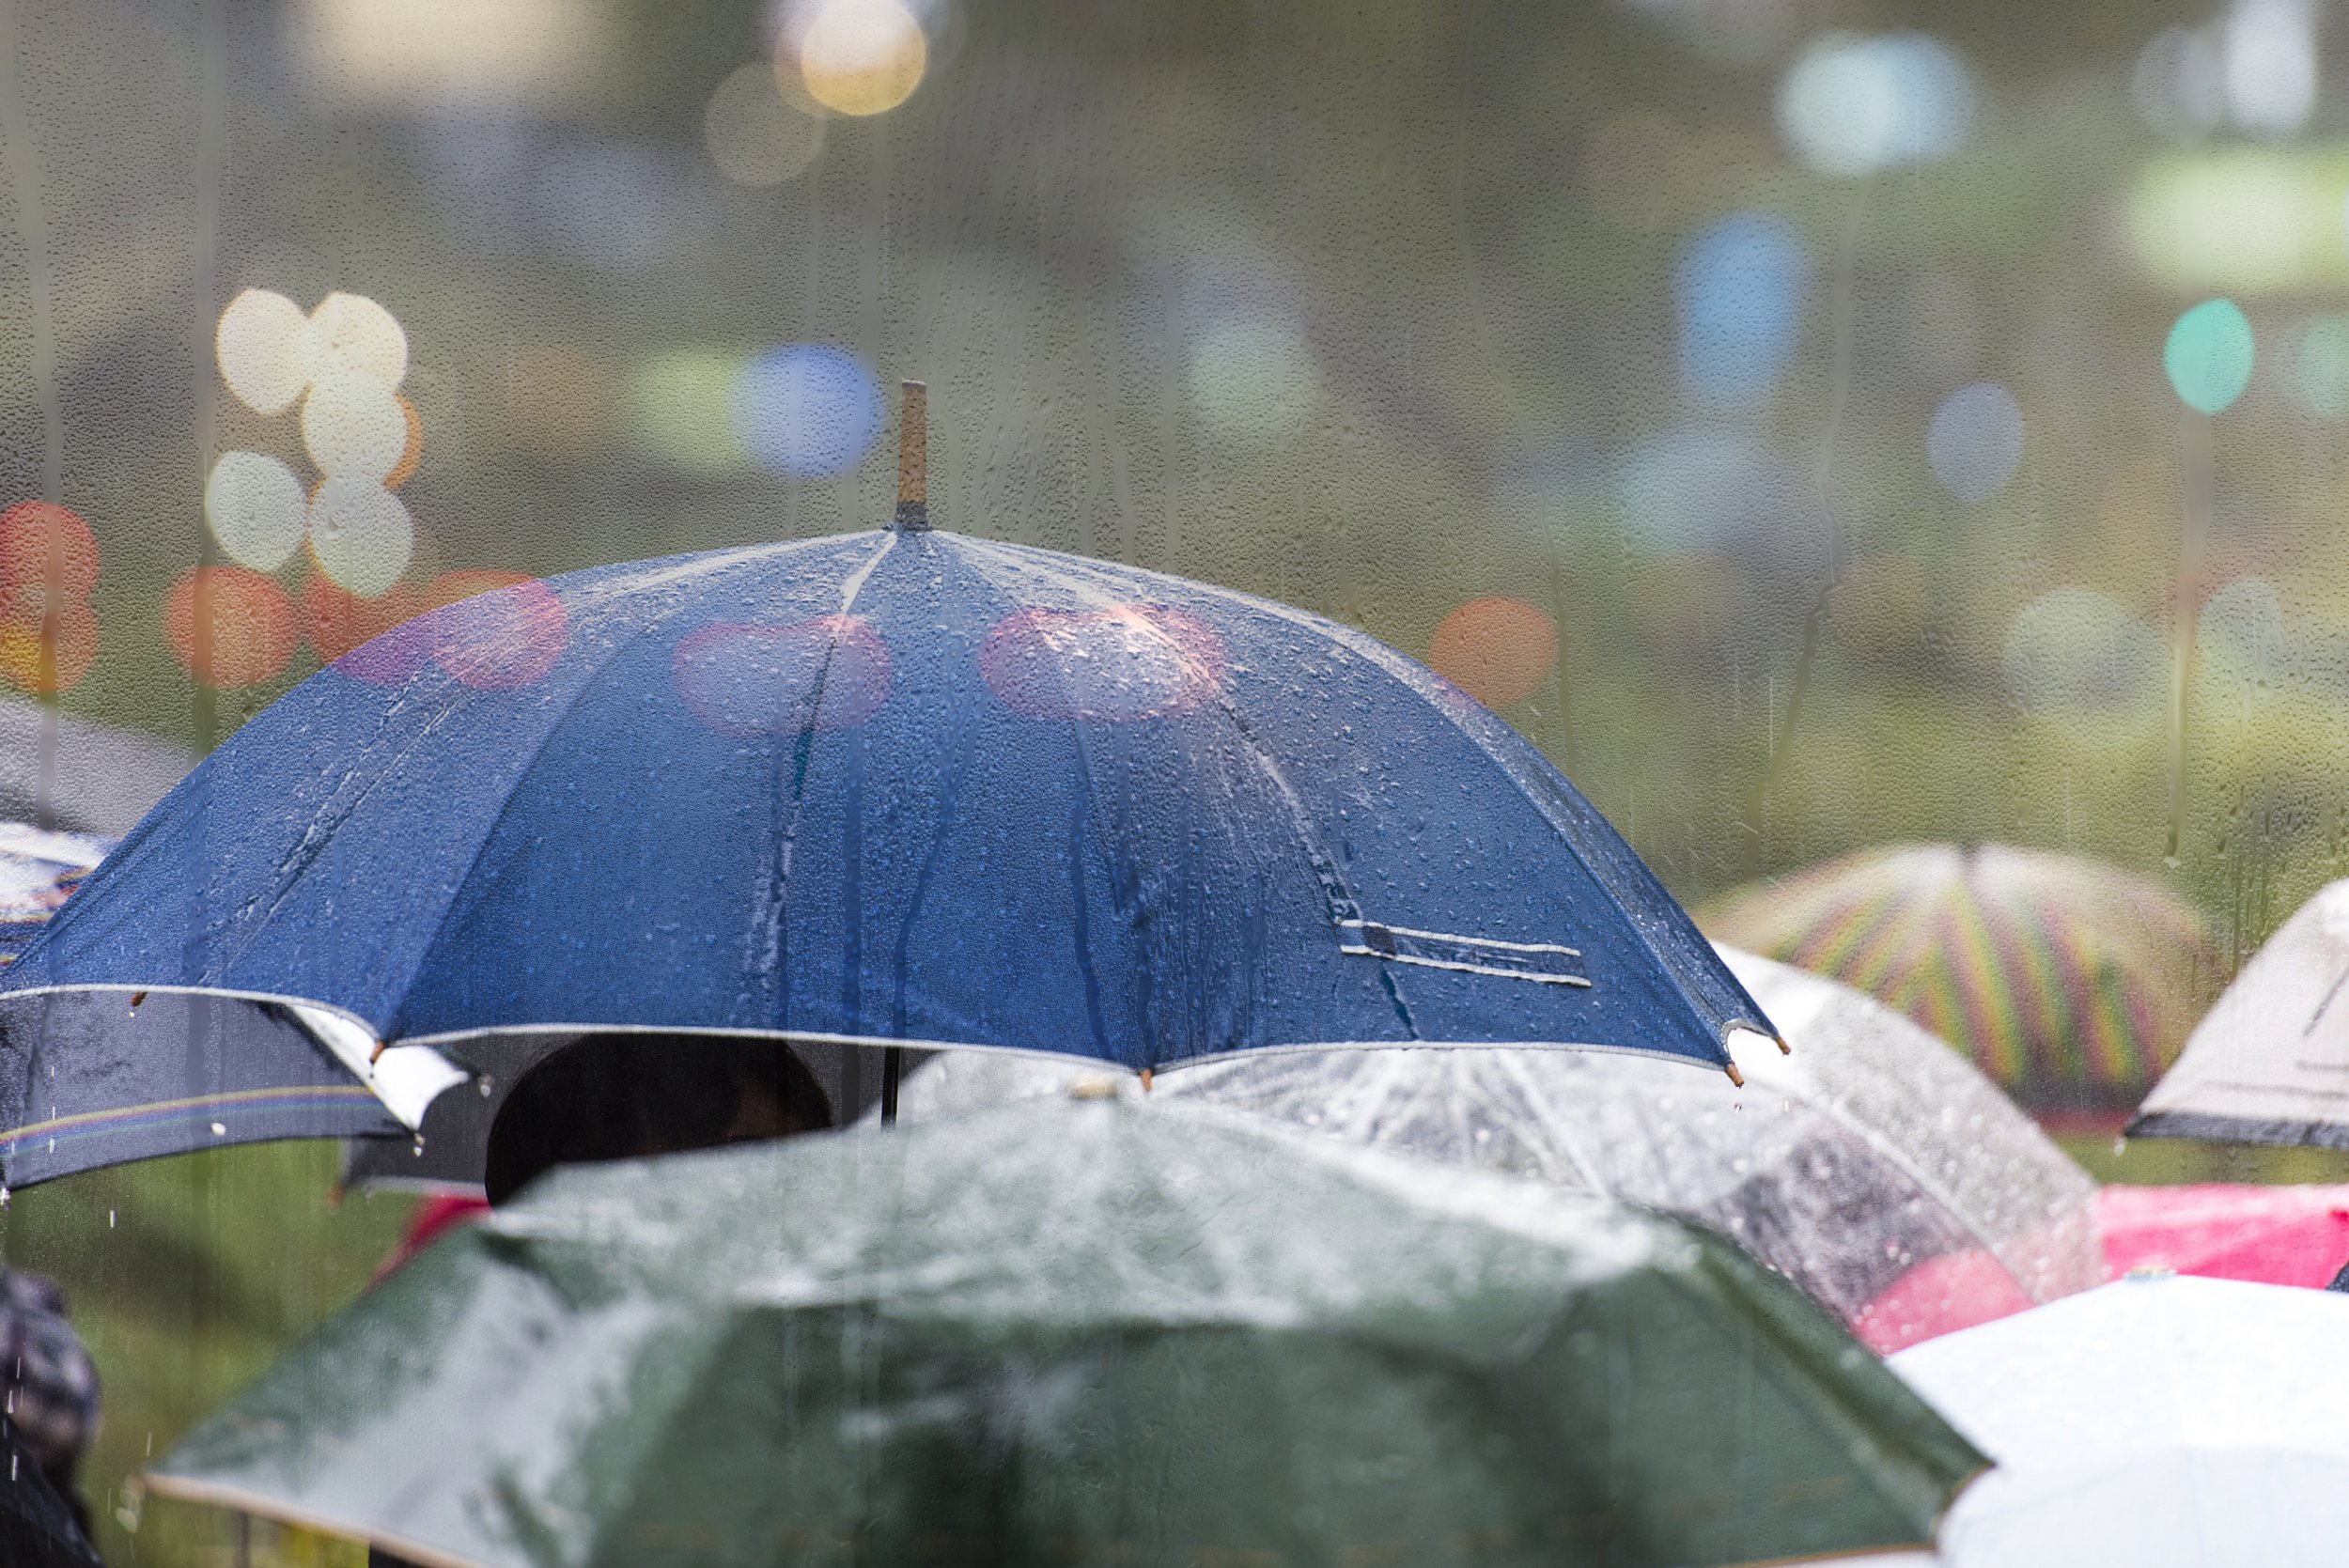 Temperatures set to plunge as heavy rain hits UK